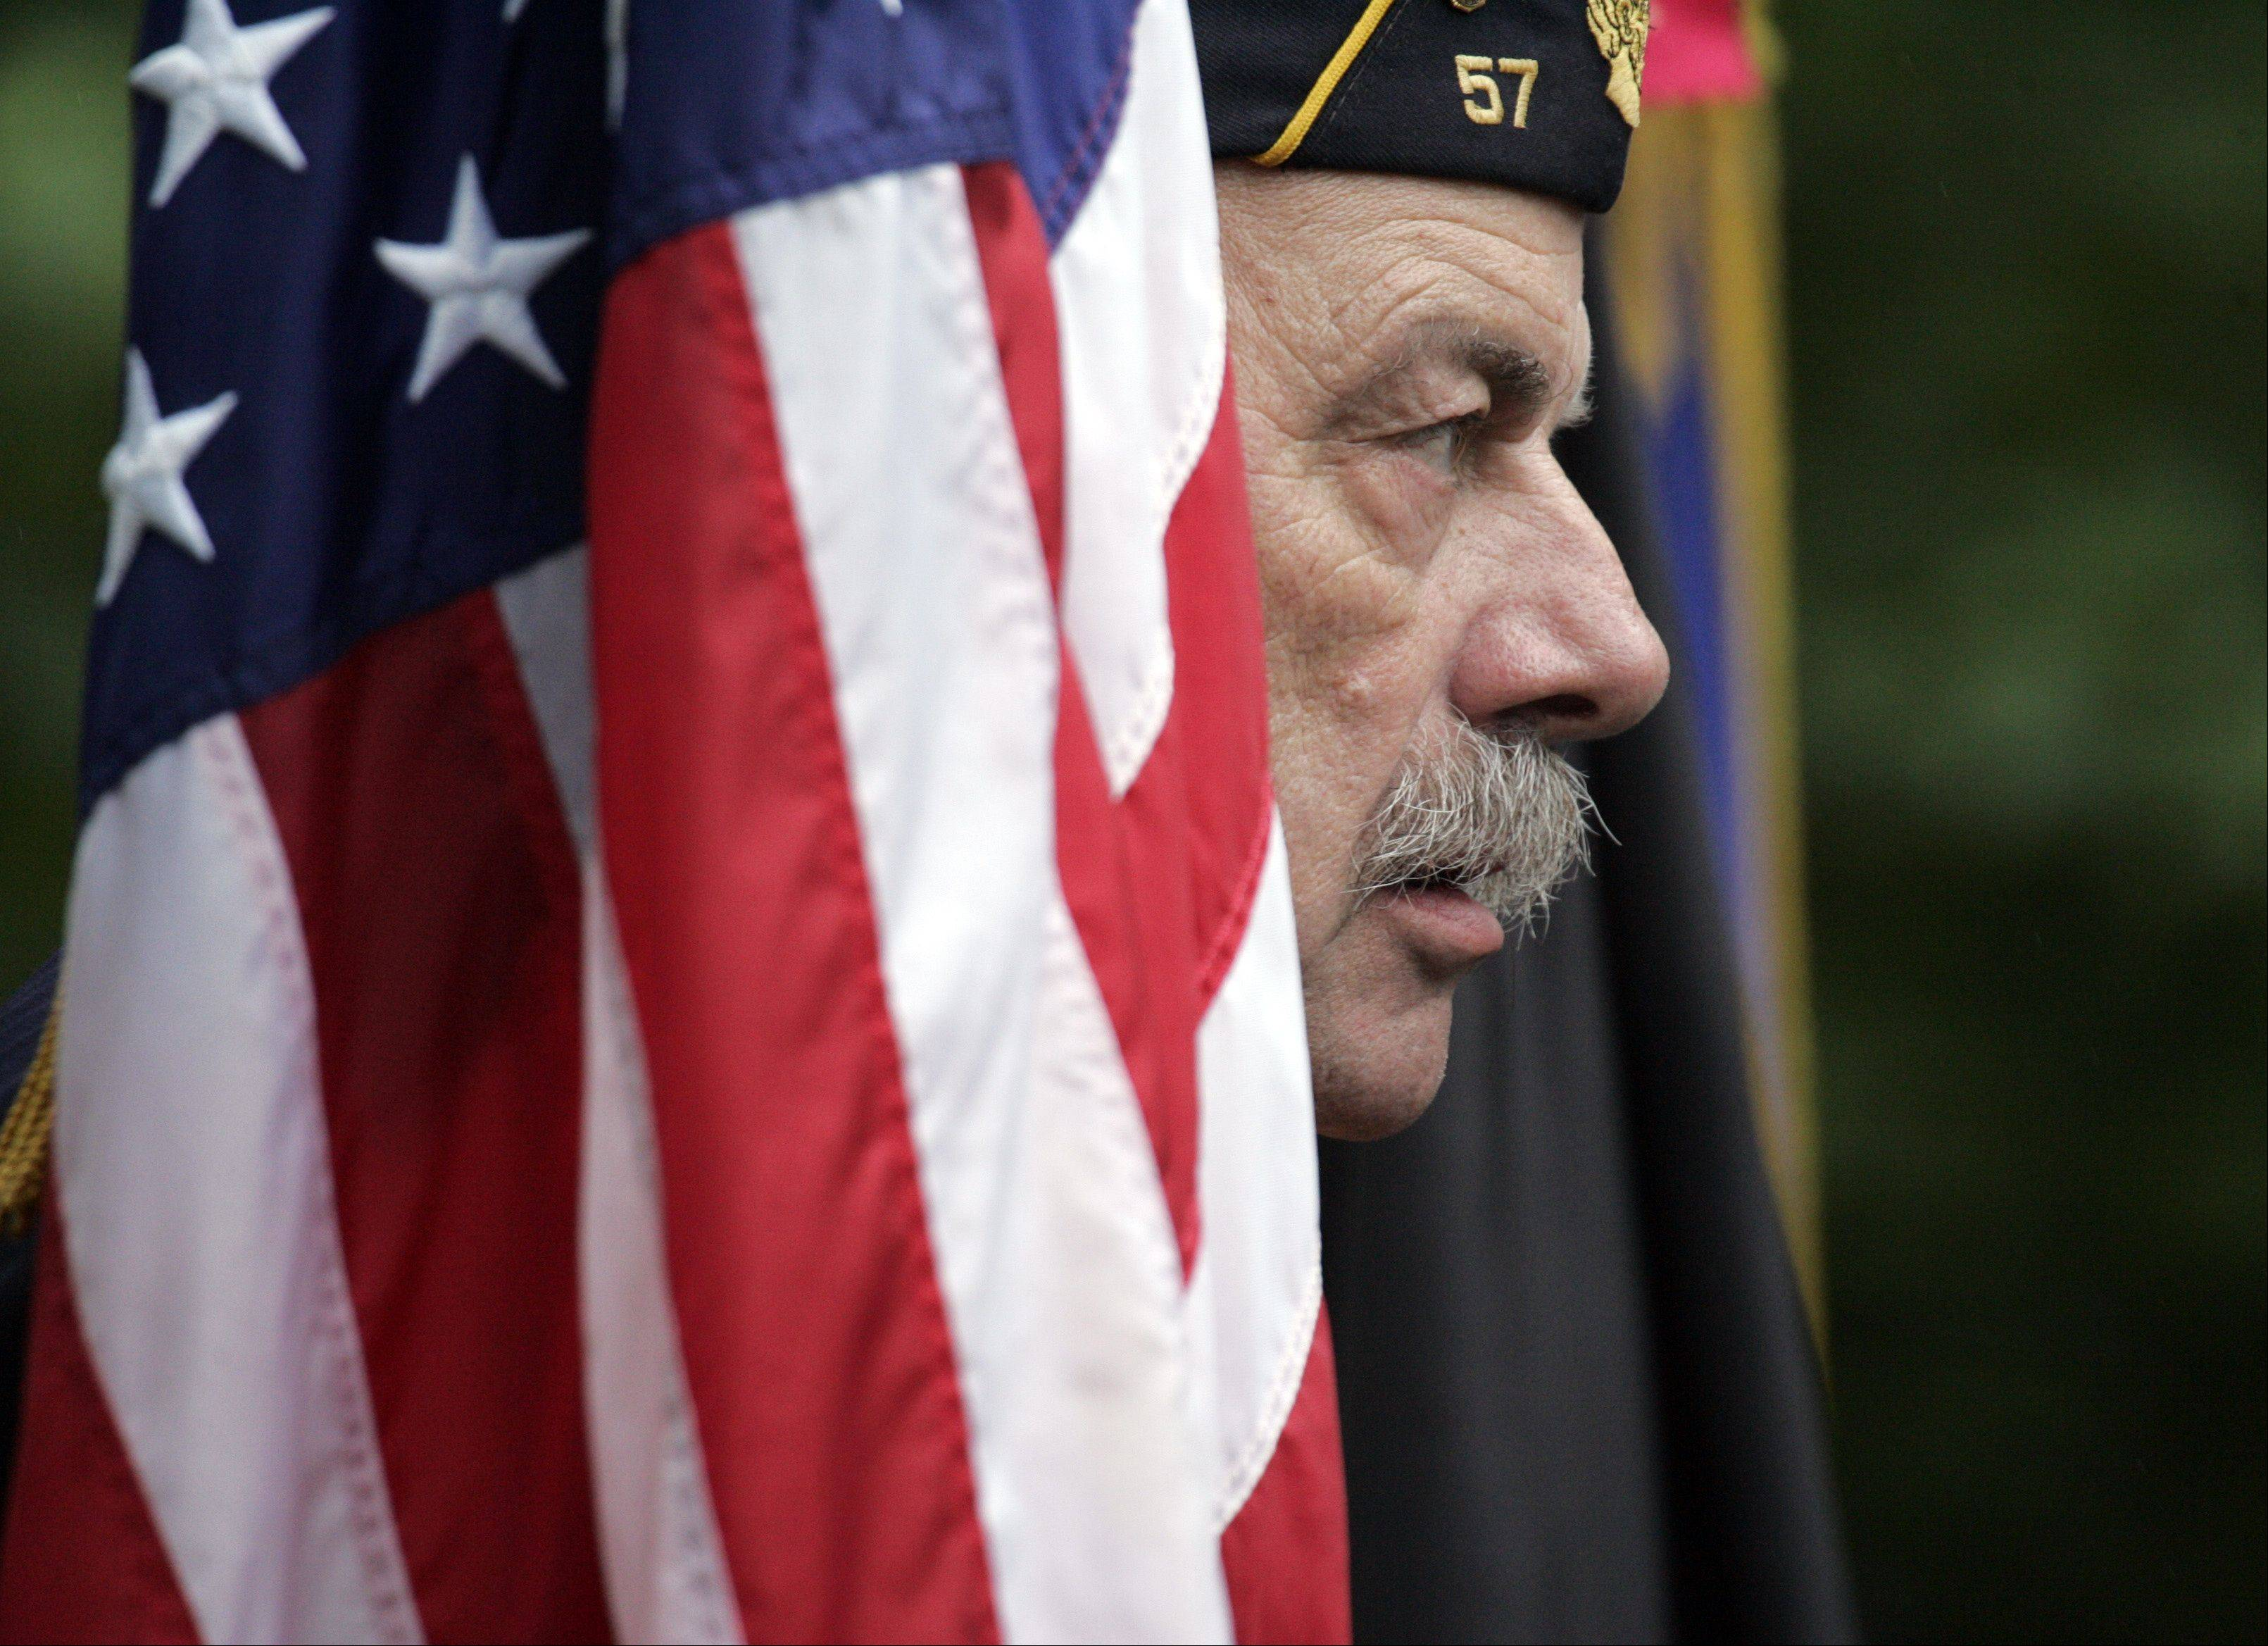 Rich Hamilton of American Legion Post 57 stands with the color guard during the Memorial Day celebration at Bluff City Cemetery in Elgin Monday. Hamilton of Elgin served in the Air Force.